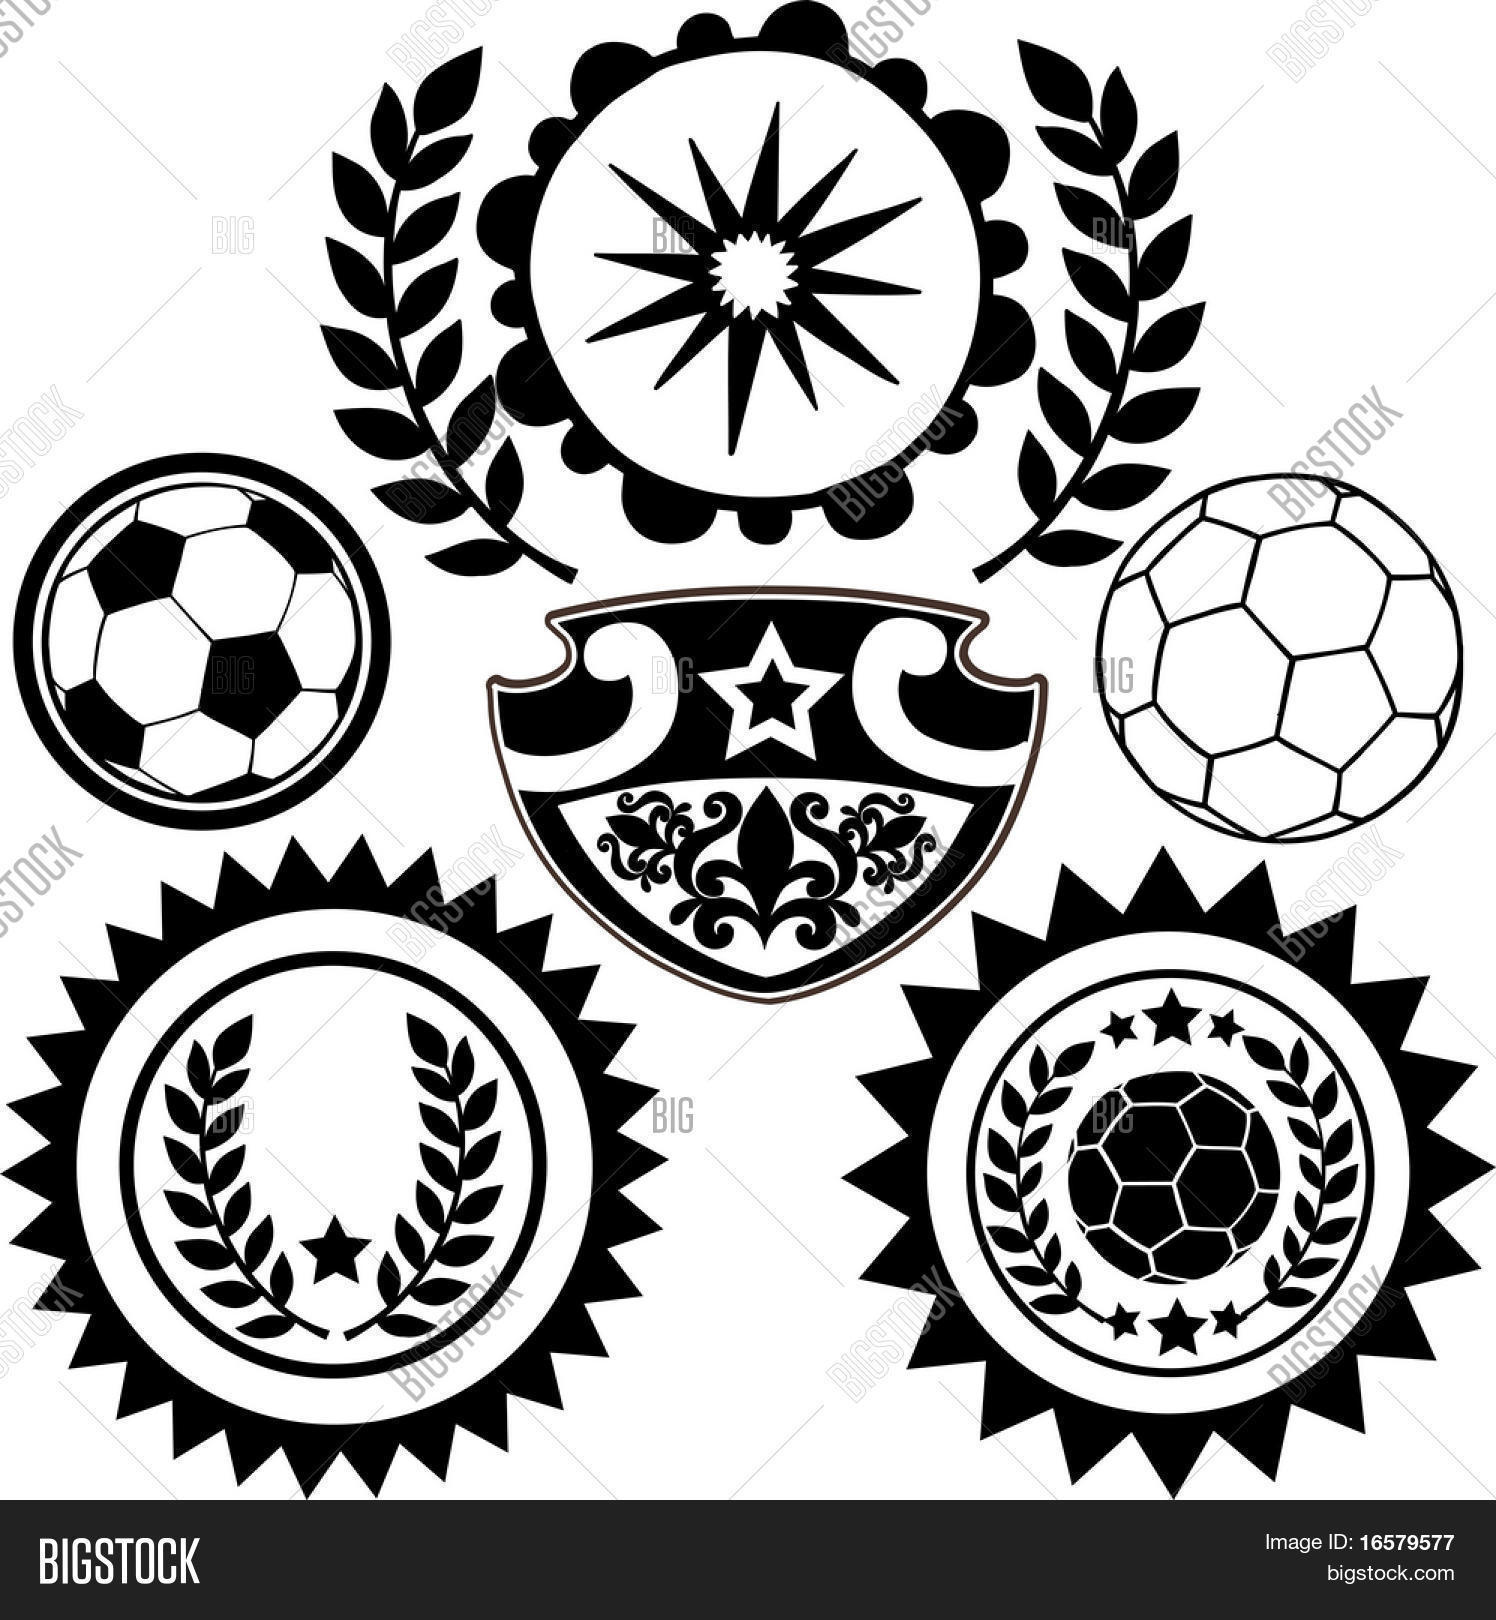 Sports Soccer Crests And Patch Vector Illustration